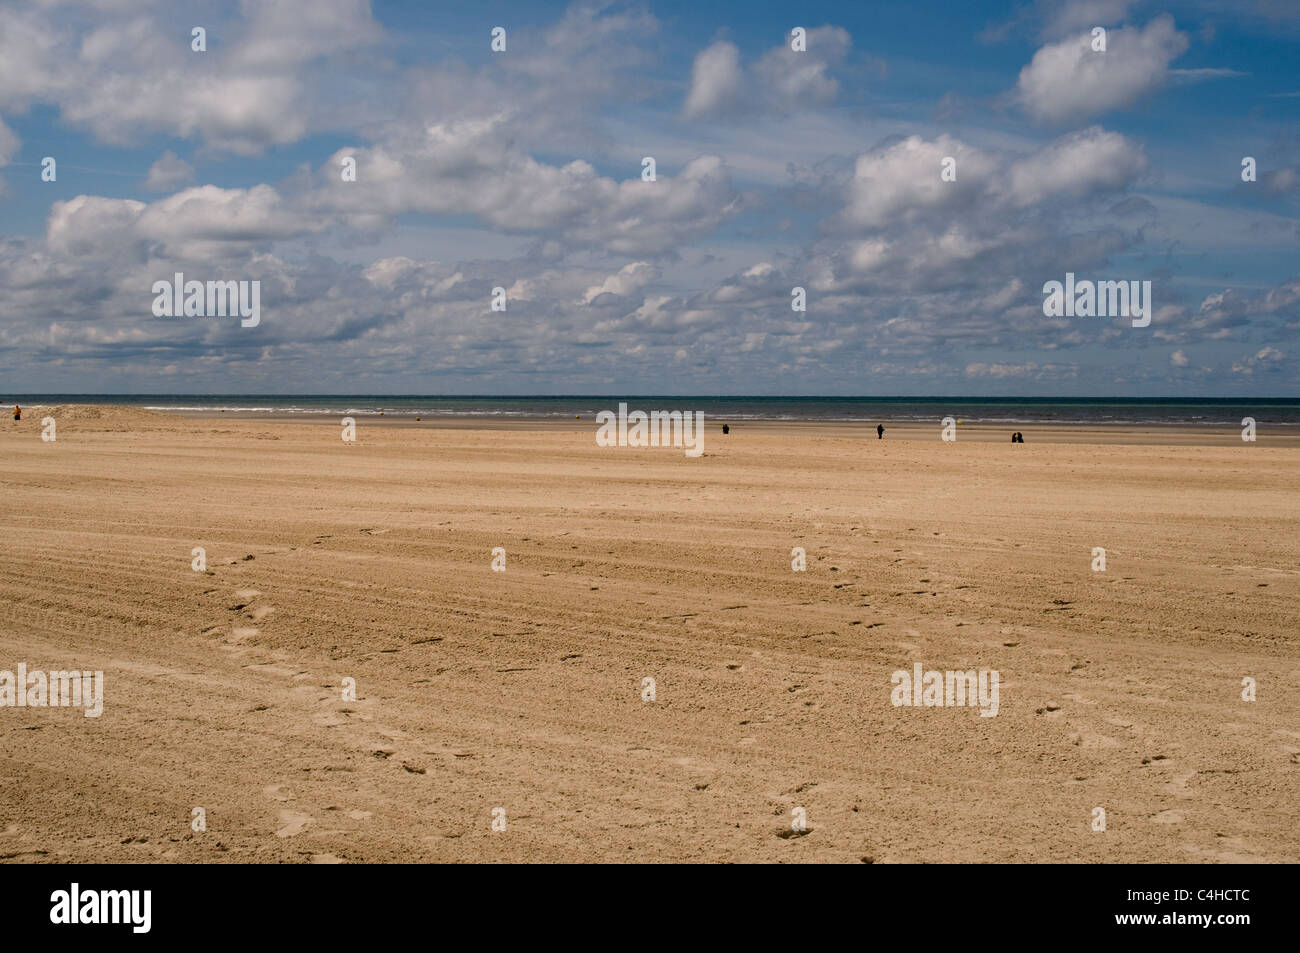 White fluffy clouds float in the sky over the deserted wide sandy beach at Le Touquet, France - Stock Image